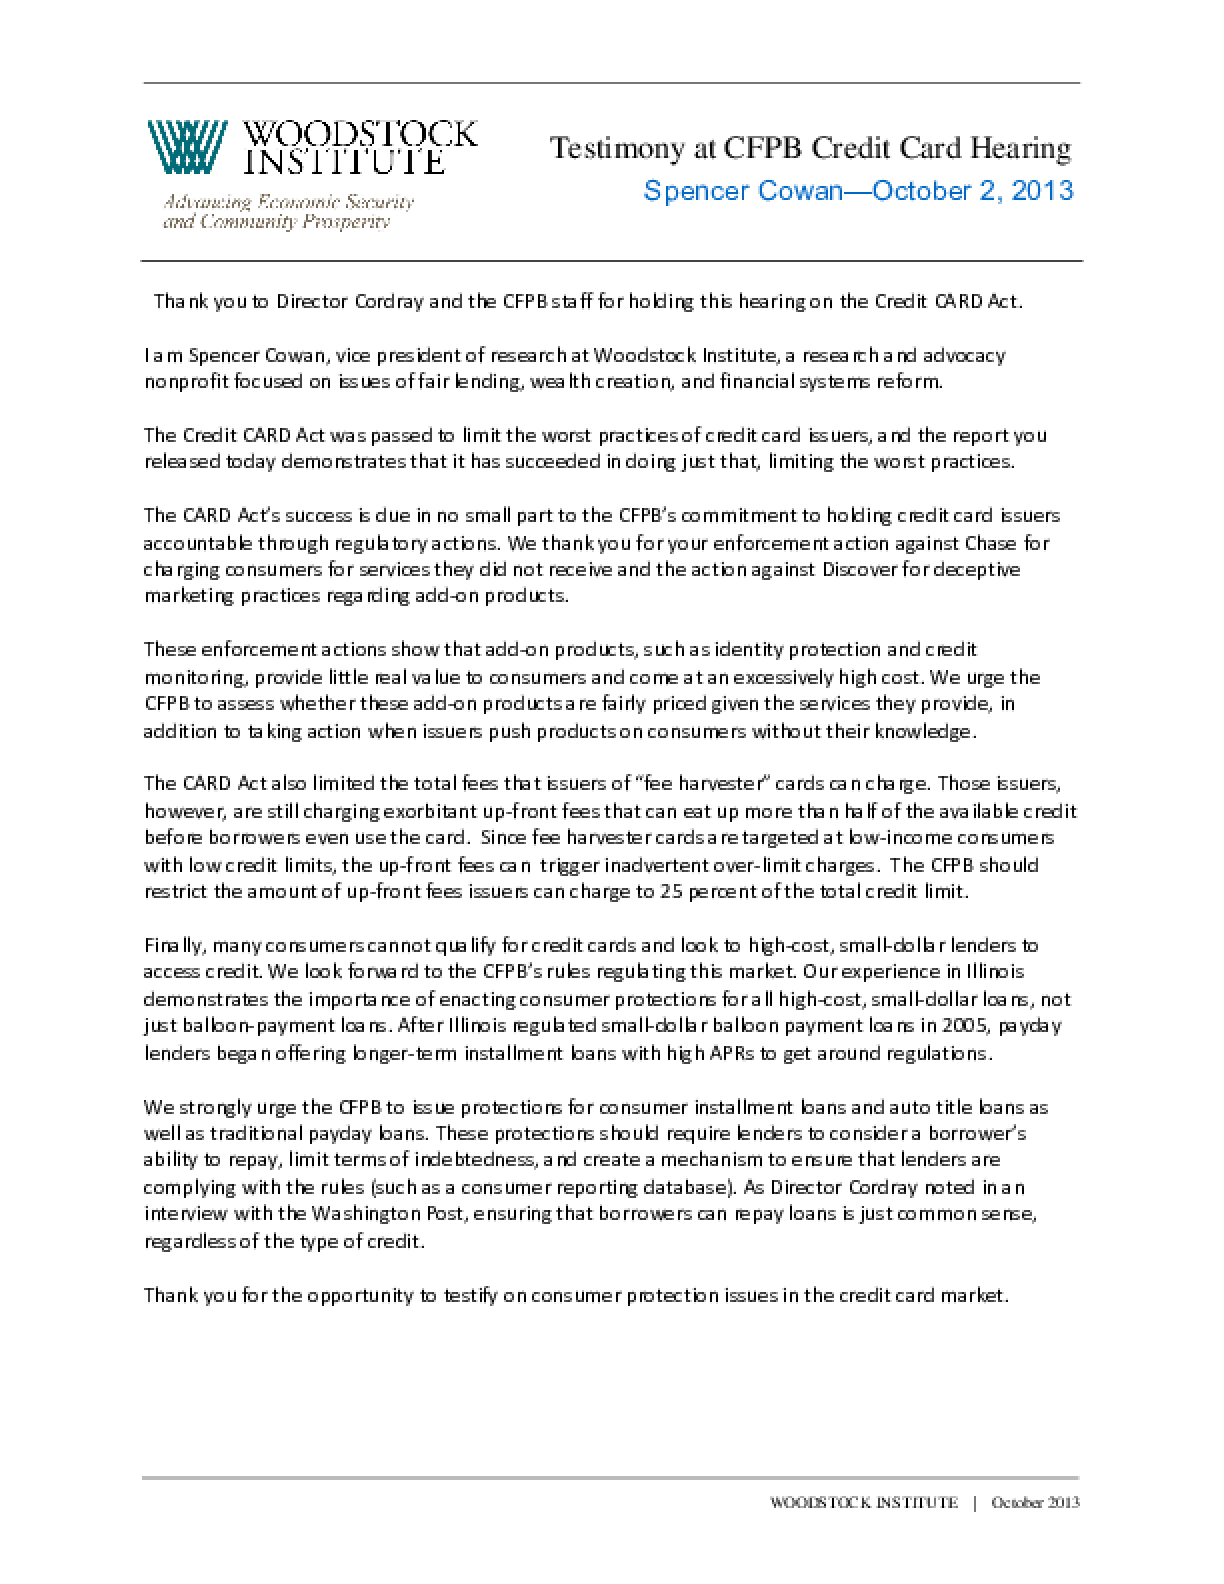 Testimony of Spencer Cowan before the Consumer Financial Protection Bureau regarding issues in the credit card and payday loan markets